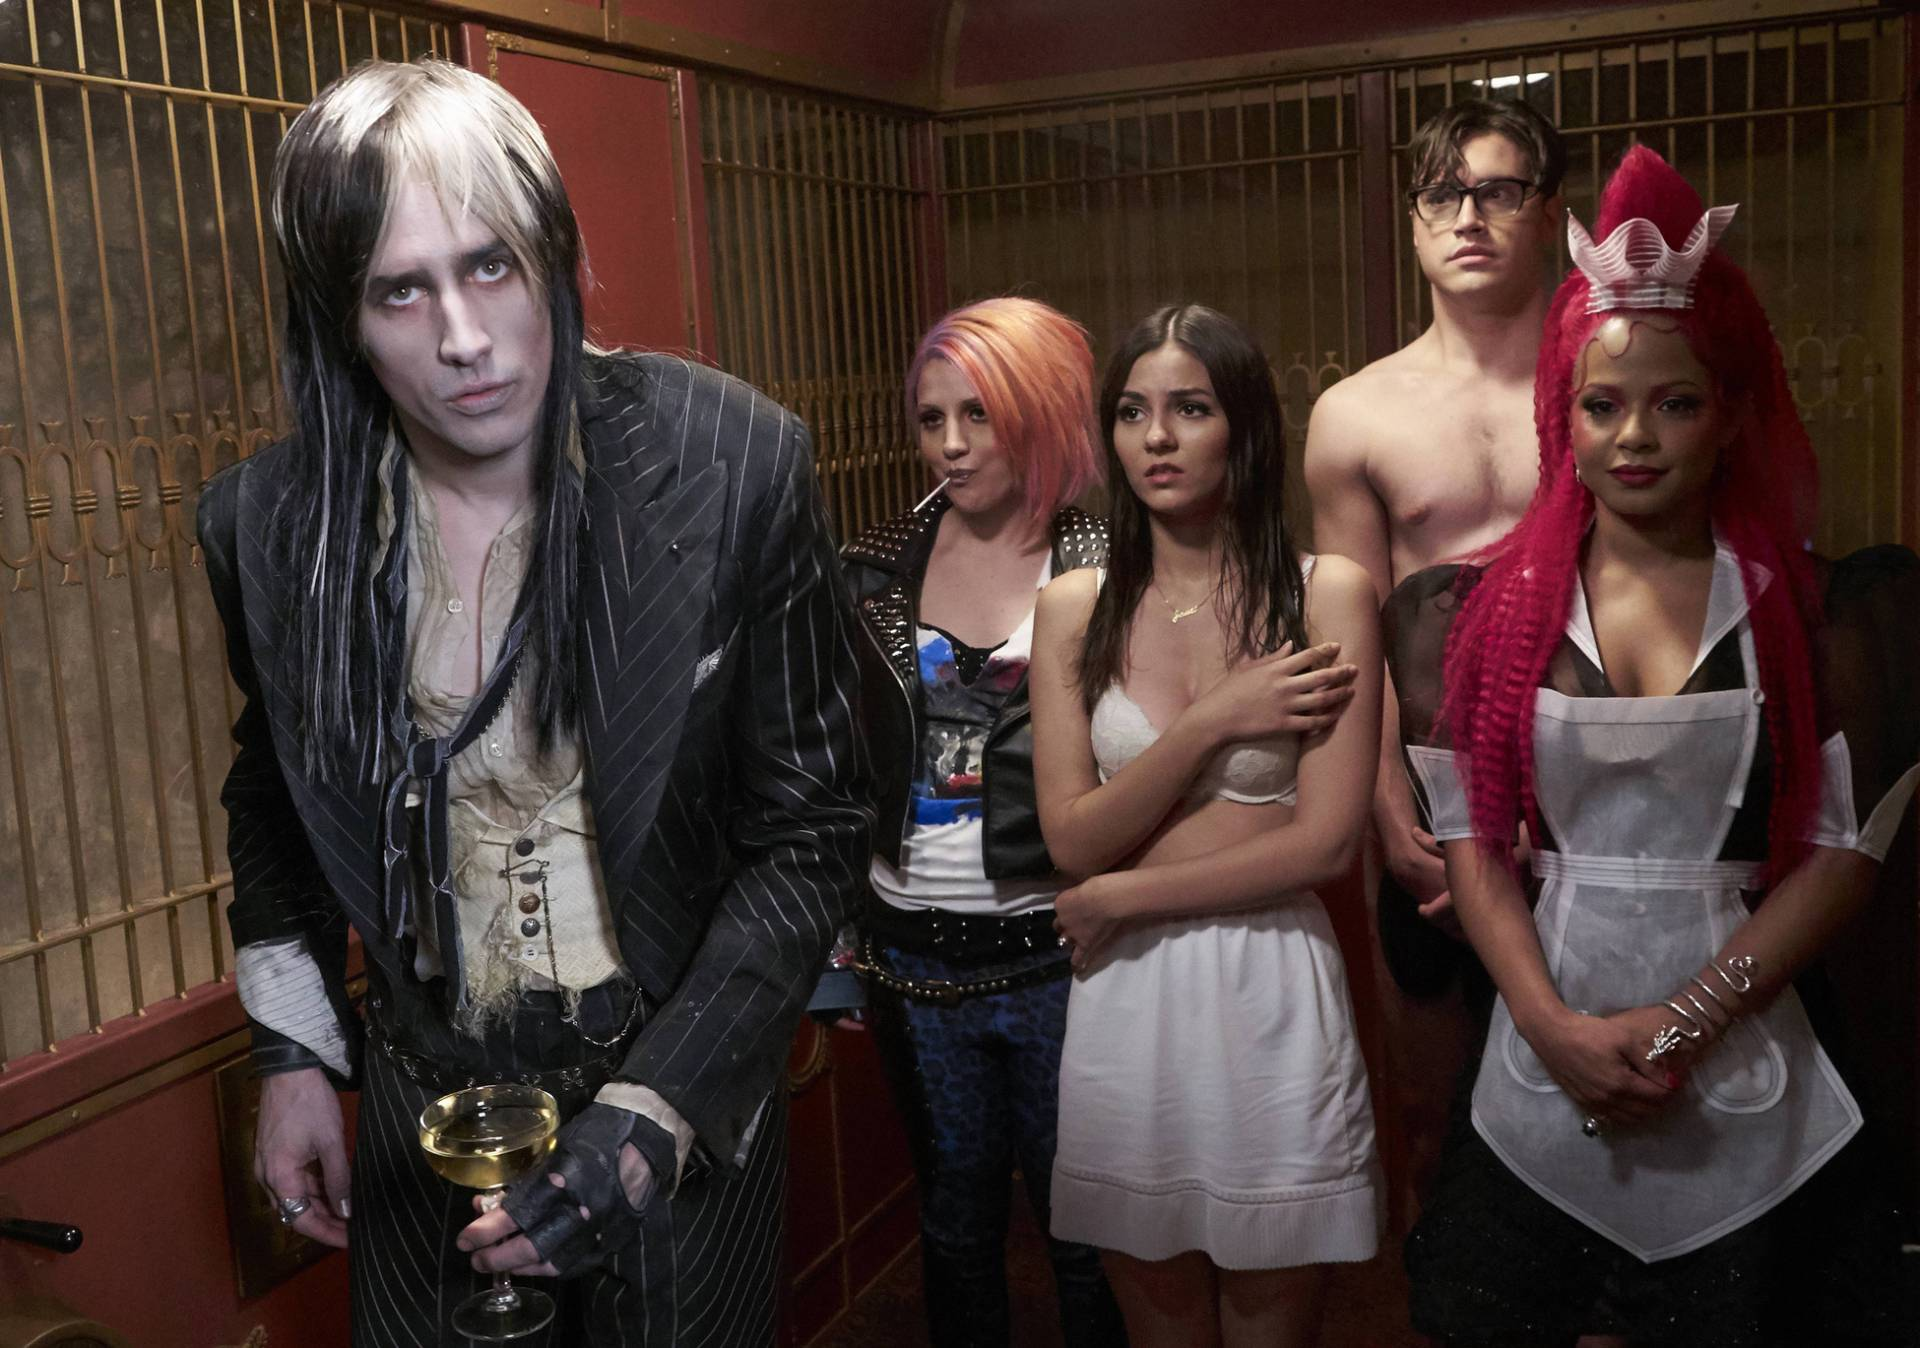 """On April 2015, Fox announced it was working on a new production of the iconic """"The Rocky Horror Picture Show."""" Photo credit: Blackfilm.com"""